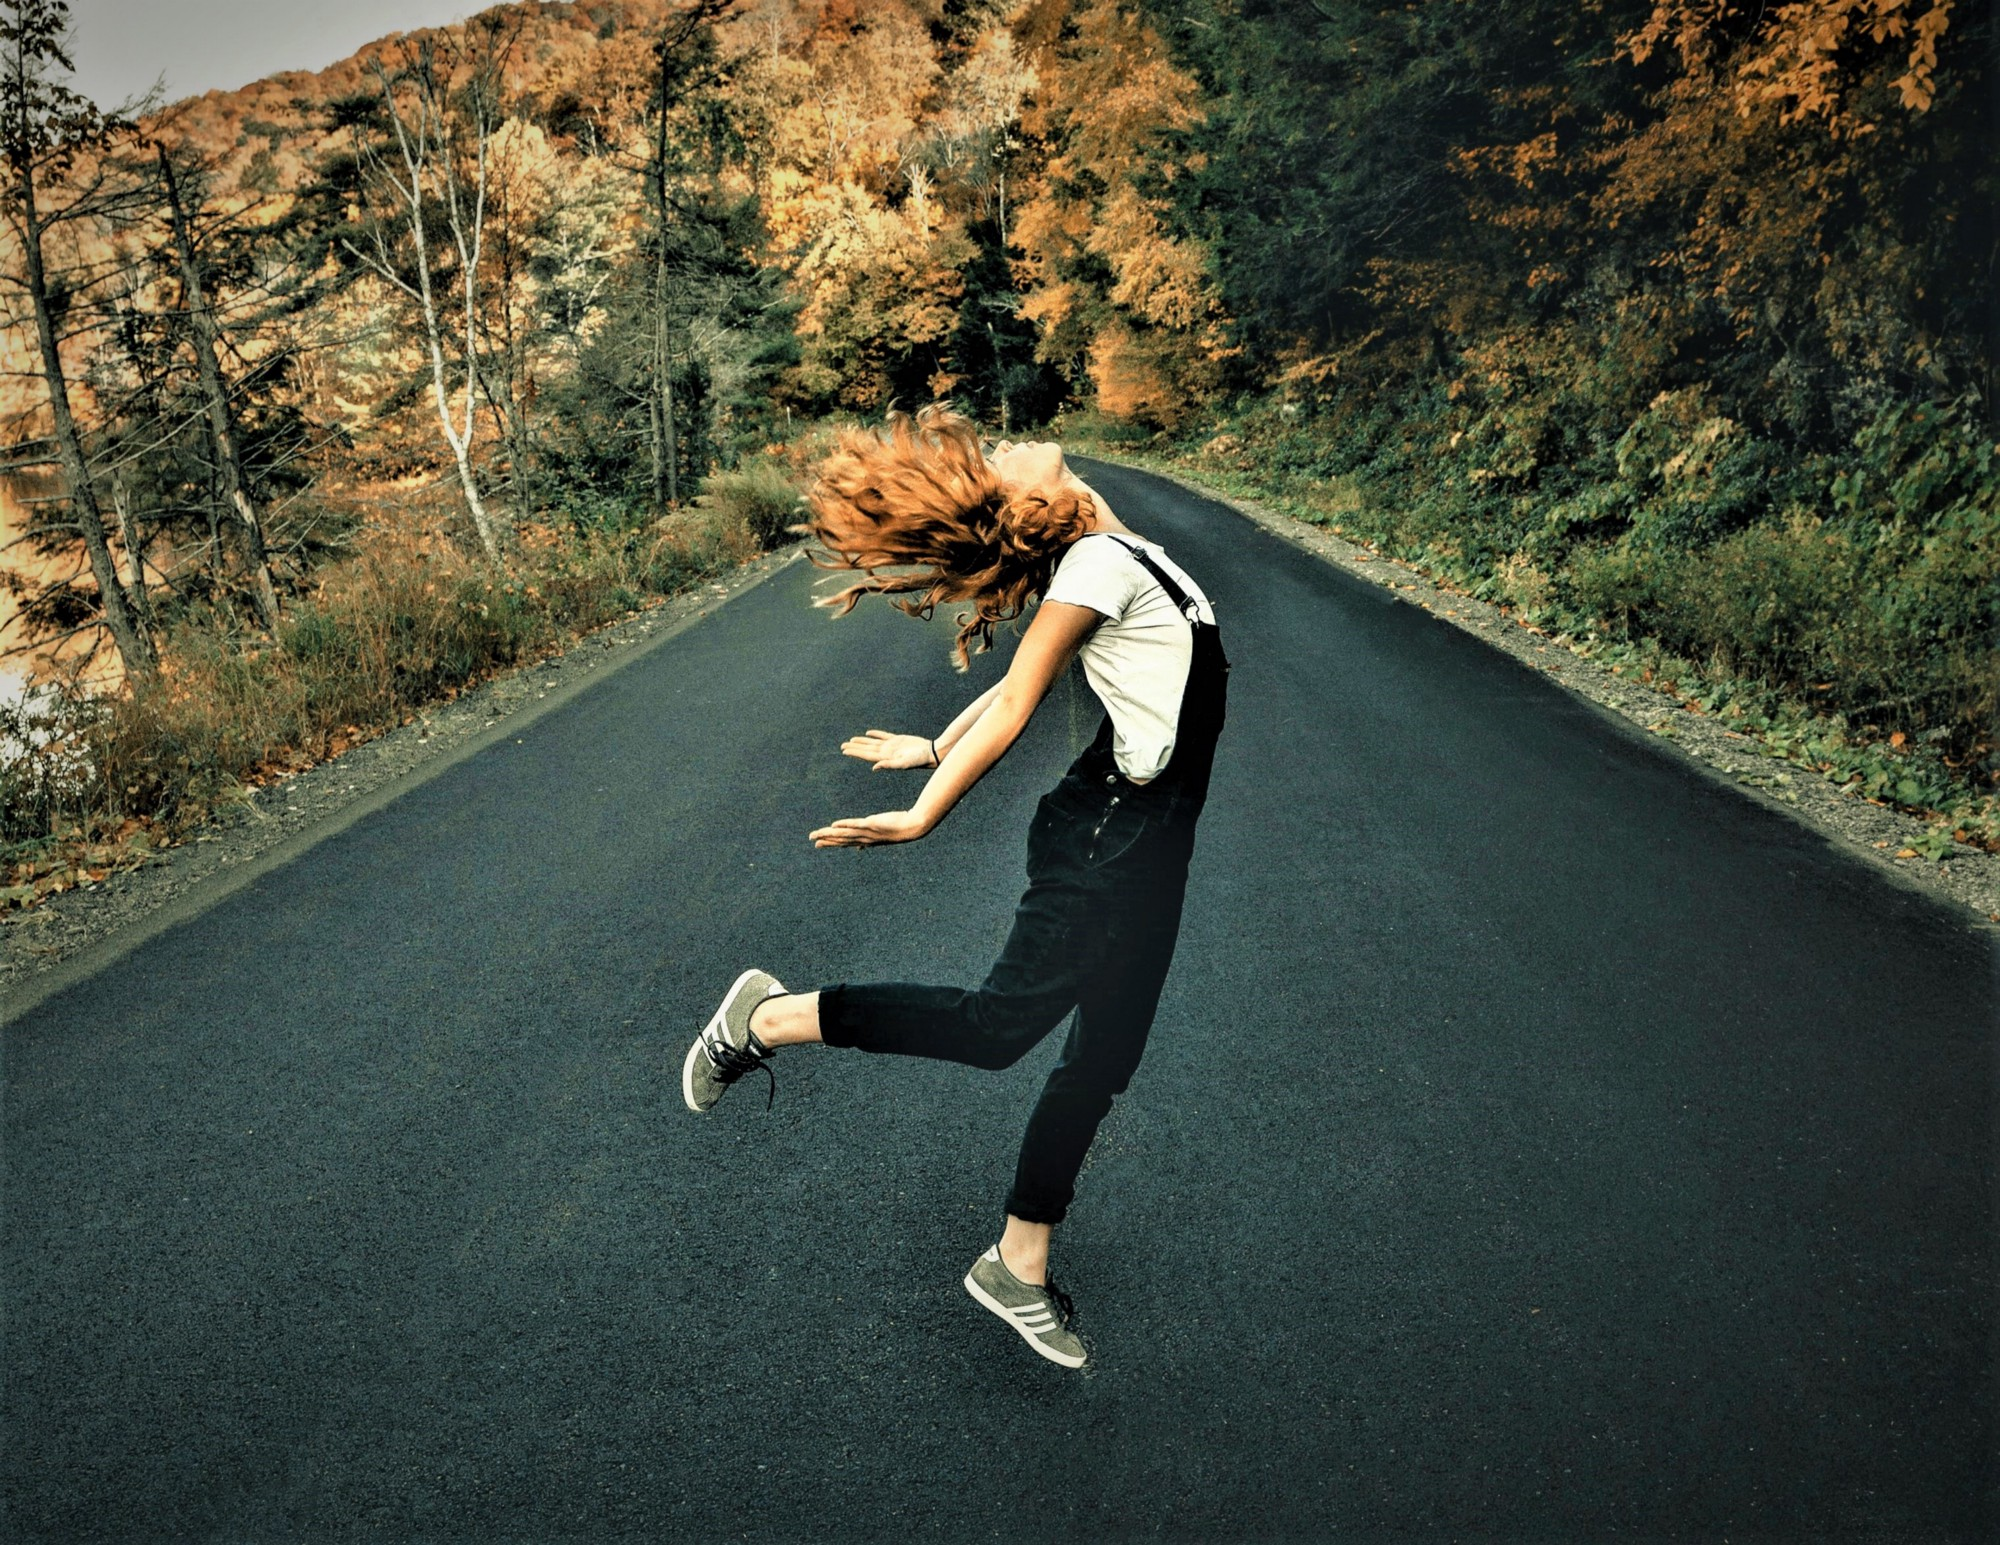 Girl with red hair wearing white shirt and dark overalls jumping in middle of road